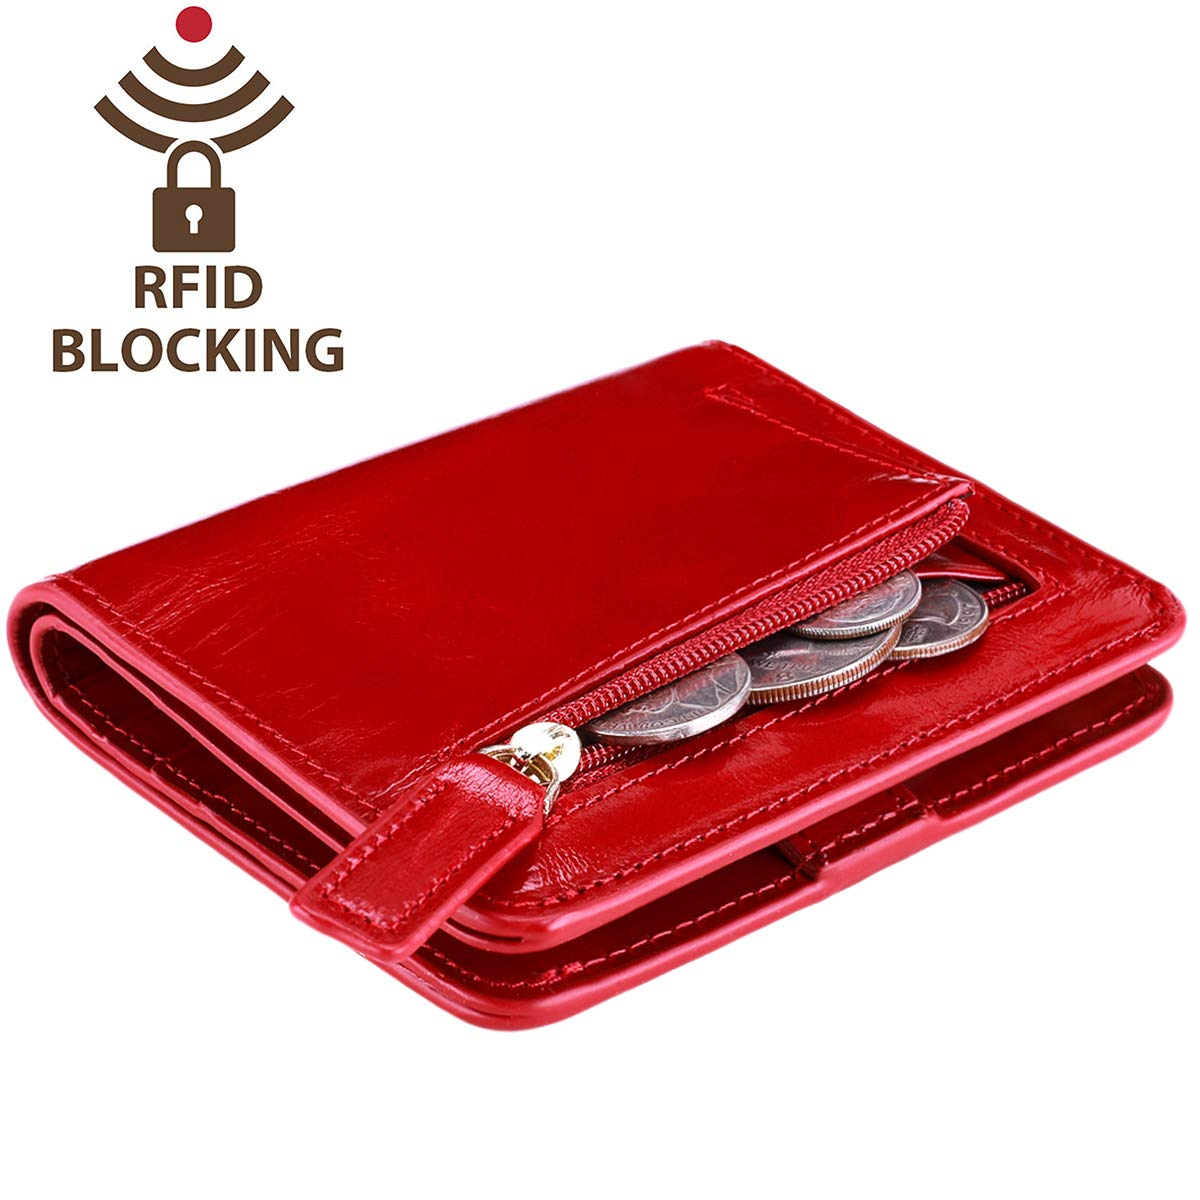 Itslife Women's Rfid Blocking Small Compact Bifold Leather Pocket Wallet Ladies Mini Purse with id Window (Waxed Red)